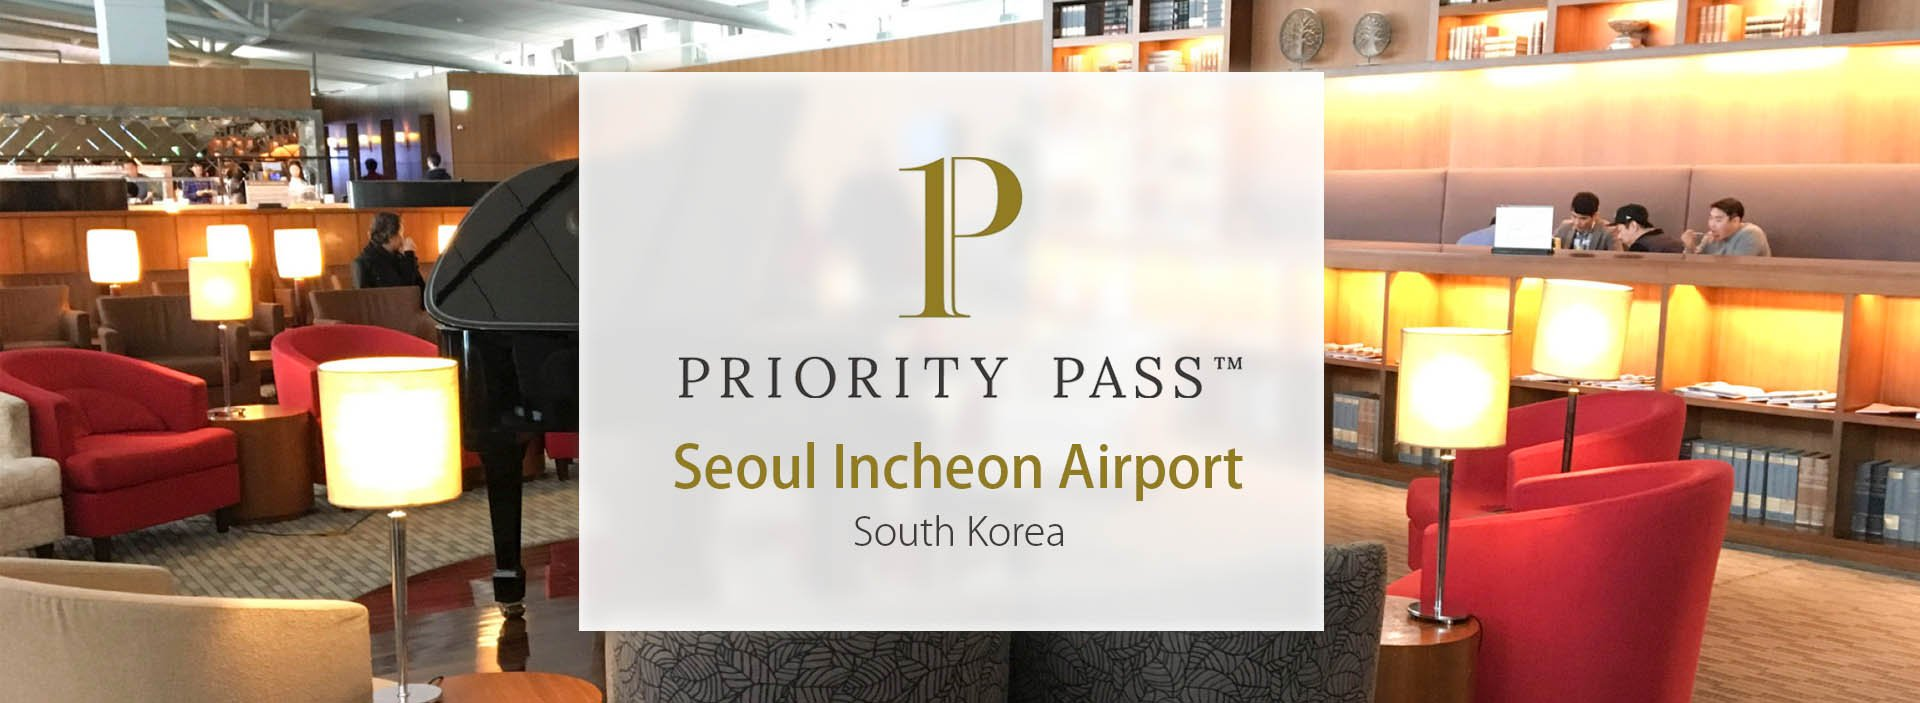 What Is the Best Priority Pass Lounge at Seoul Incheon Airport?